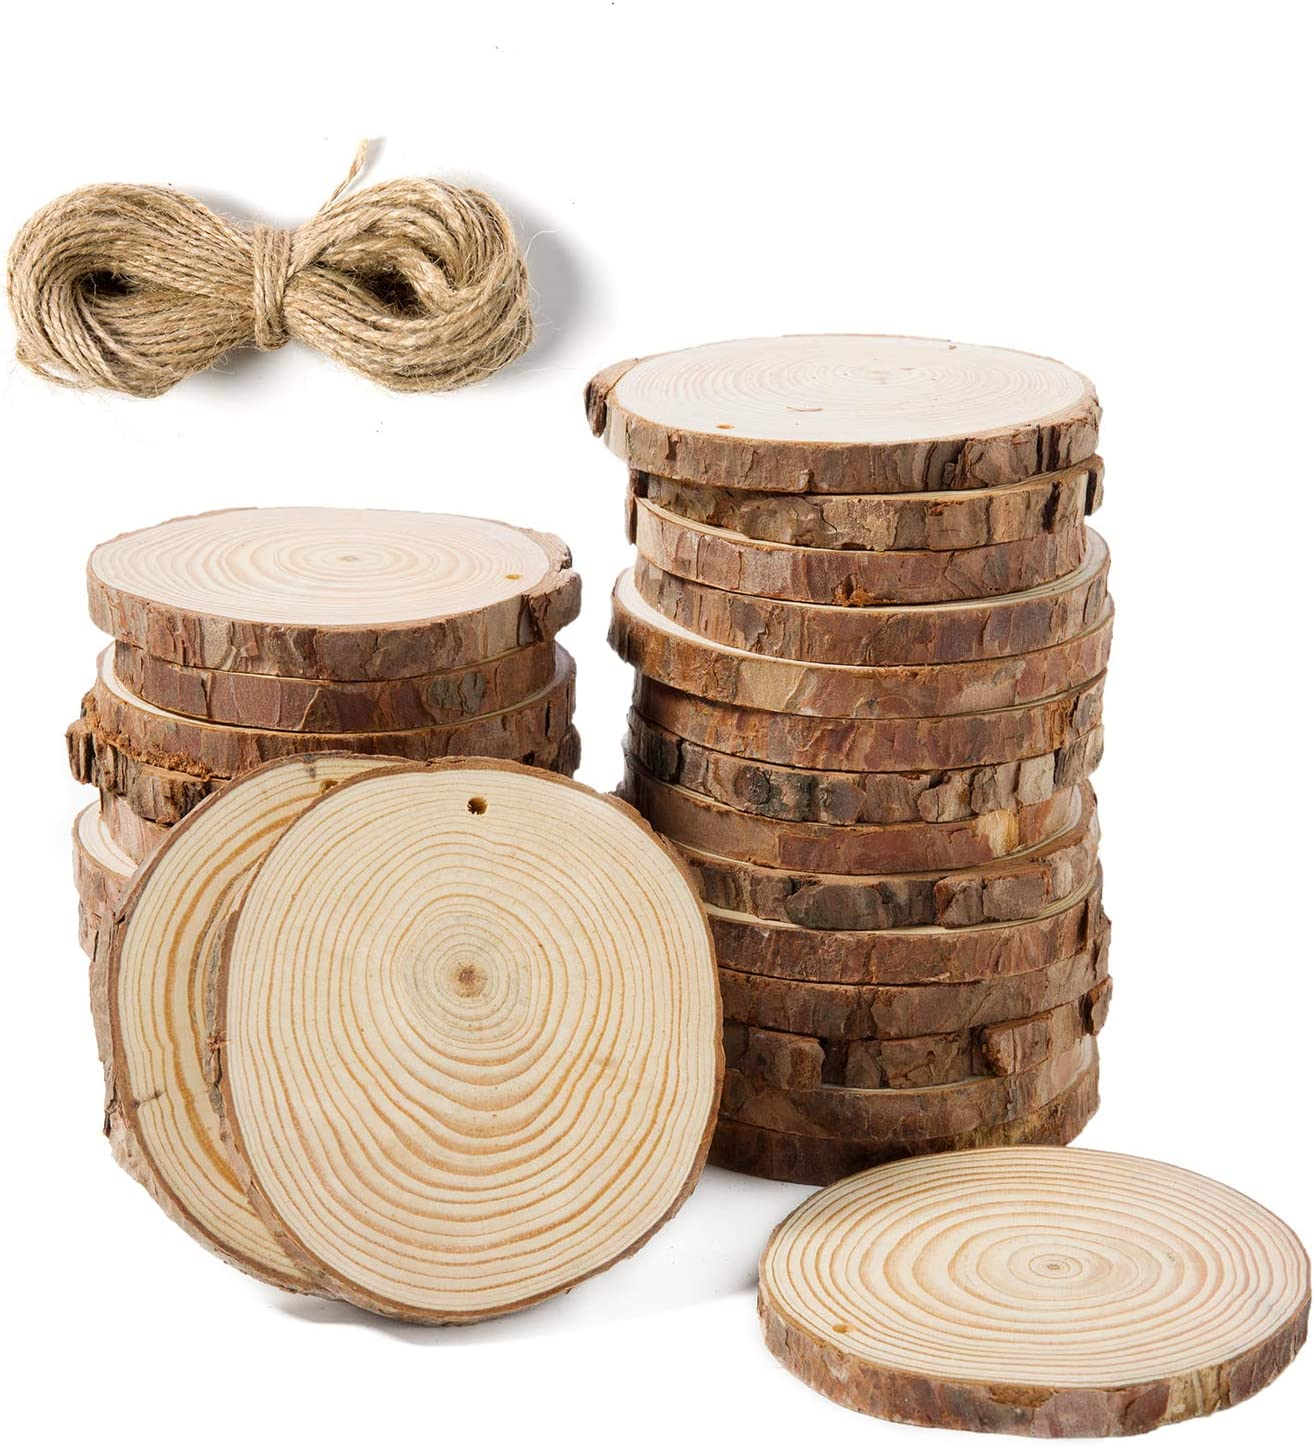 """Sunshine Natural Wood Slices 20 Pcs 3.5""""-4"""" Craft Unfinished Wood with Pre-drilled Hole and 20 Feet Twine String for Arts Wood Slices Christmas Ornaments DIY Crafts"""